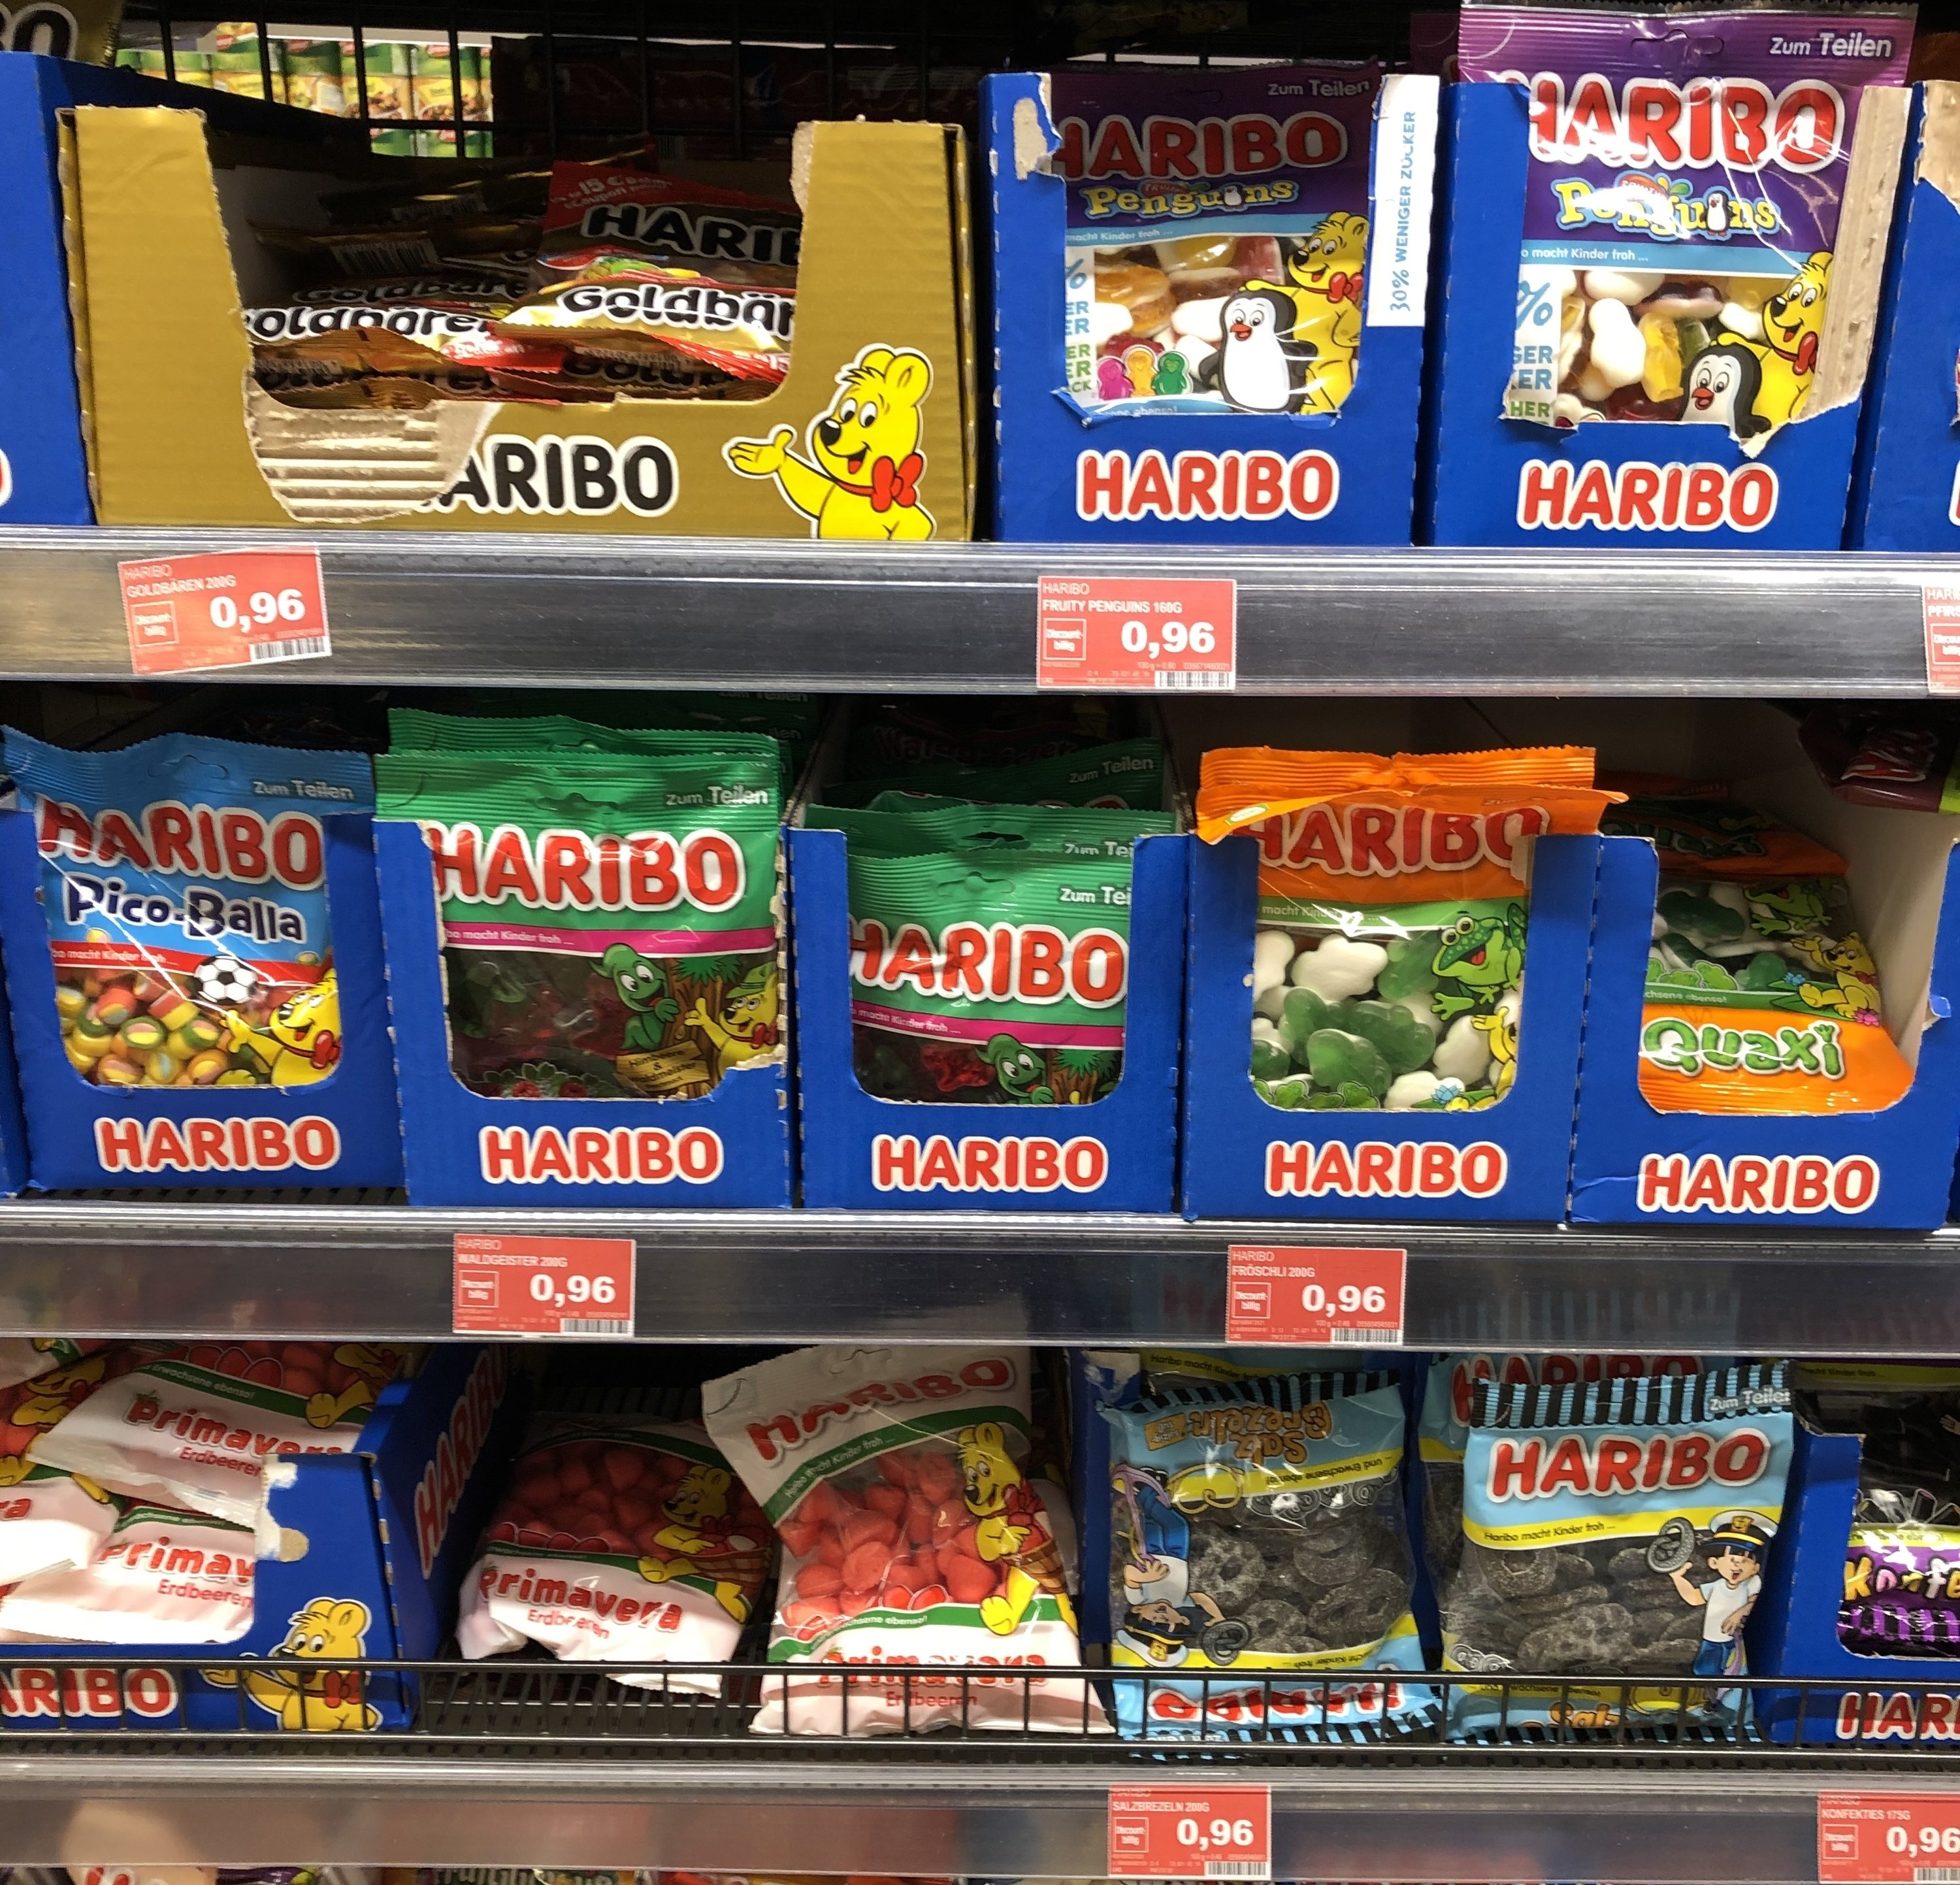 Display of Haribo gummies at a German supermarket